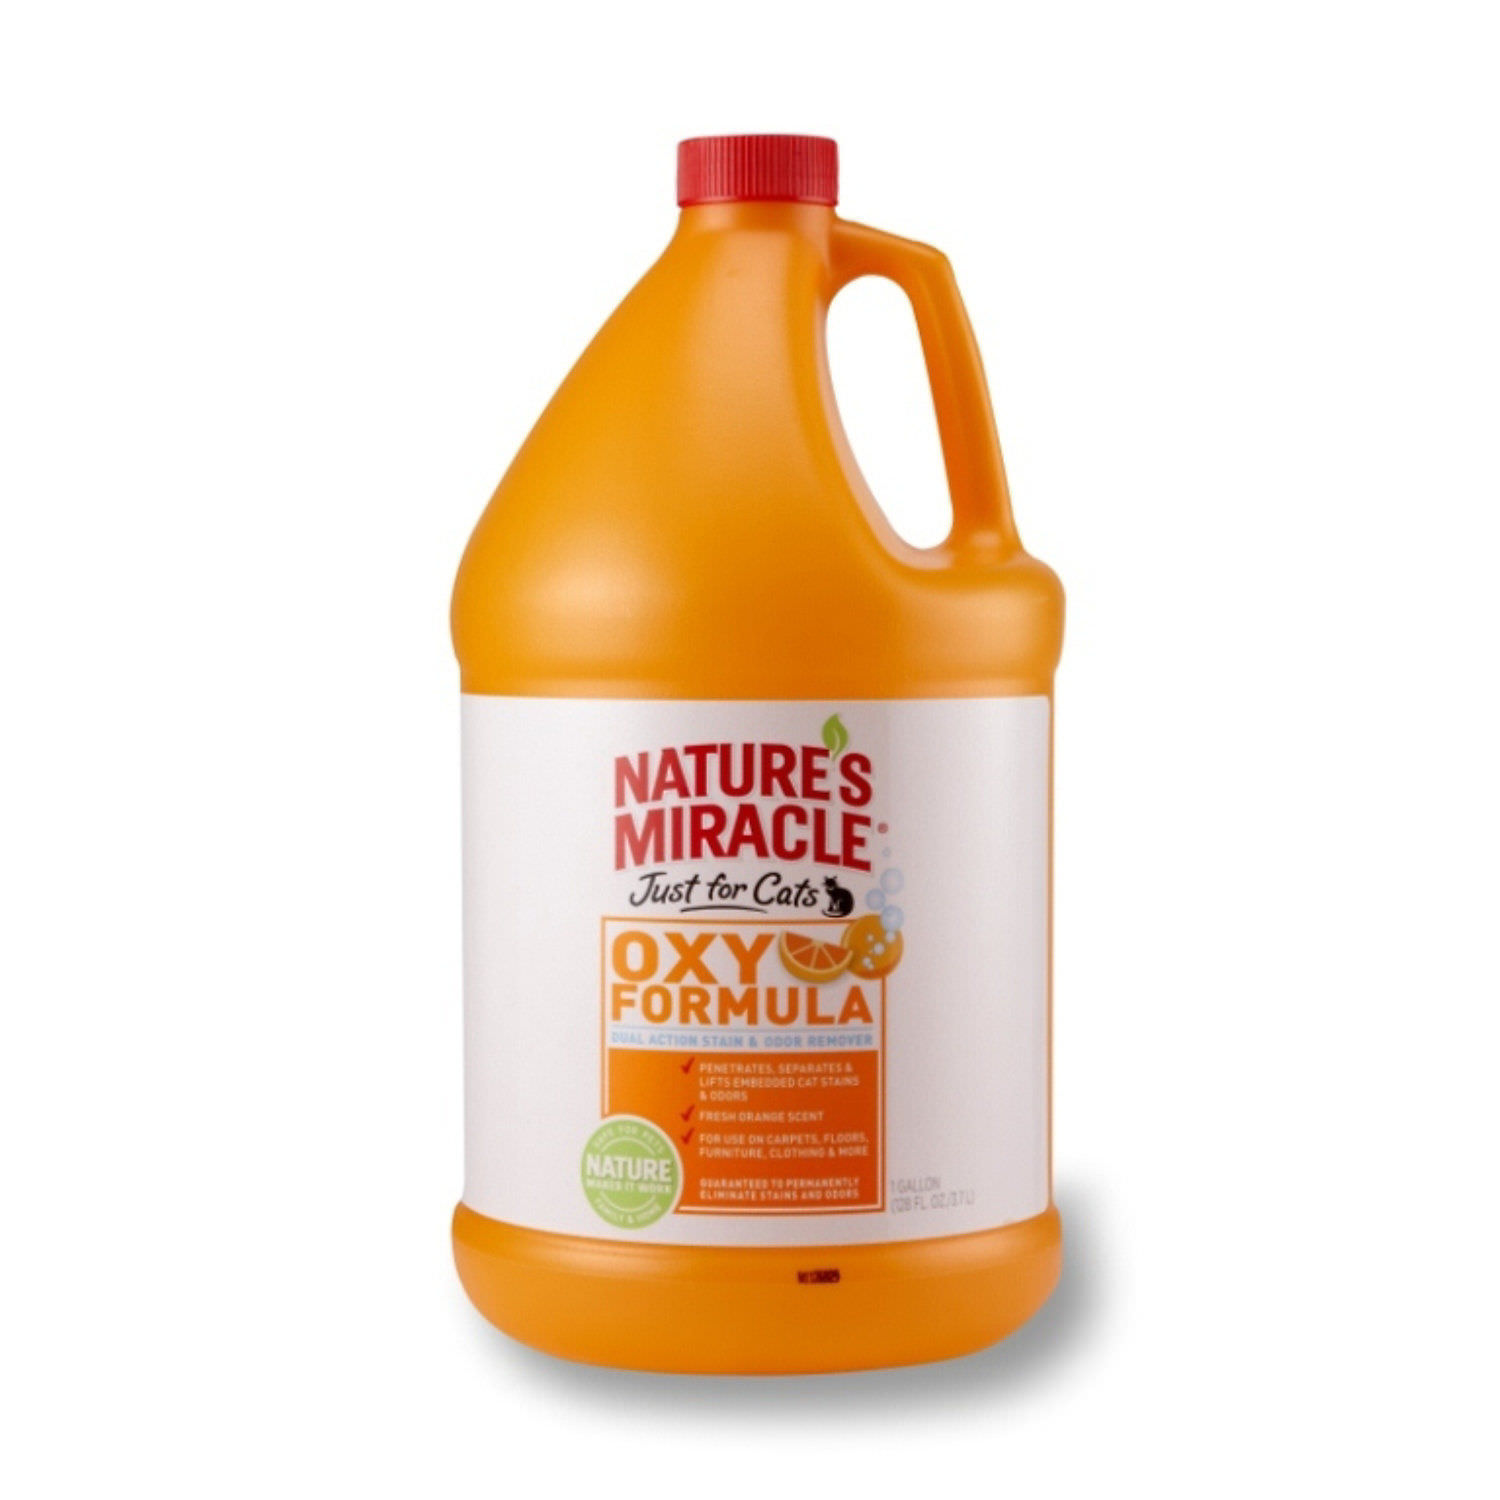 Nature's Miracle Just For Cats Orange Oxy Dual Action Stain and Odor Remover, 1 Gallon